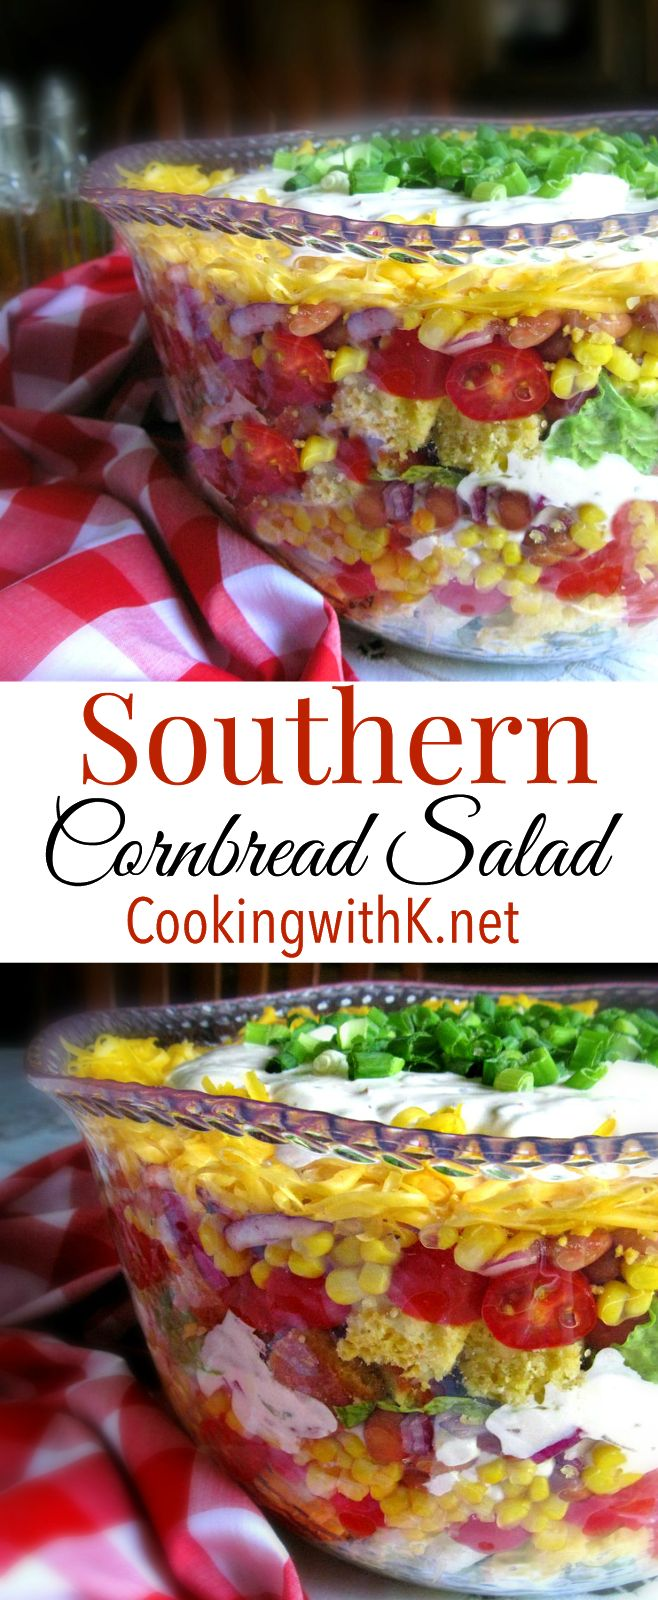 Southern Cornbread Salad  is a fun layered salad full of your favorite vegetables. Want to wow your guest? Serve this incredibly delicious ...